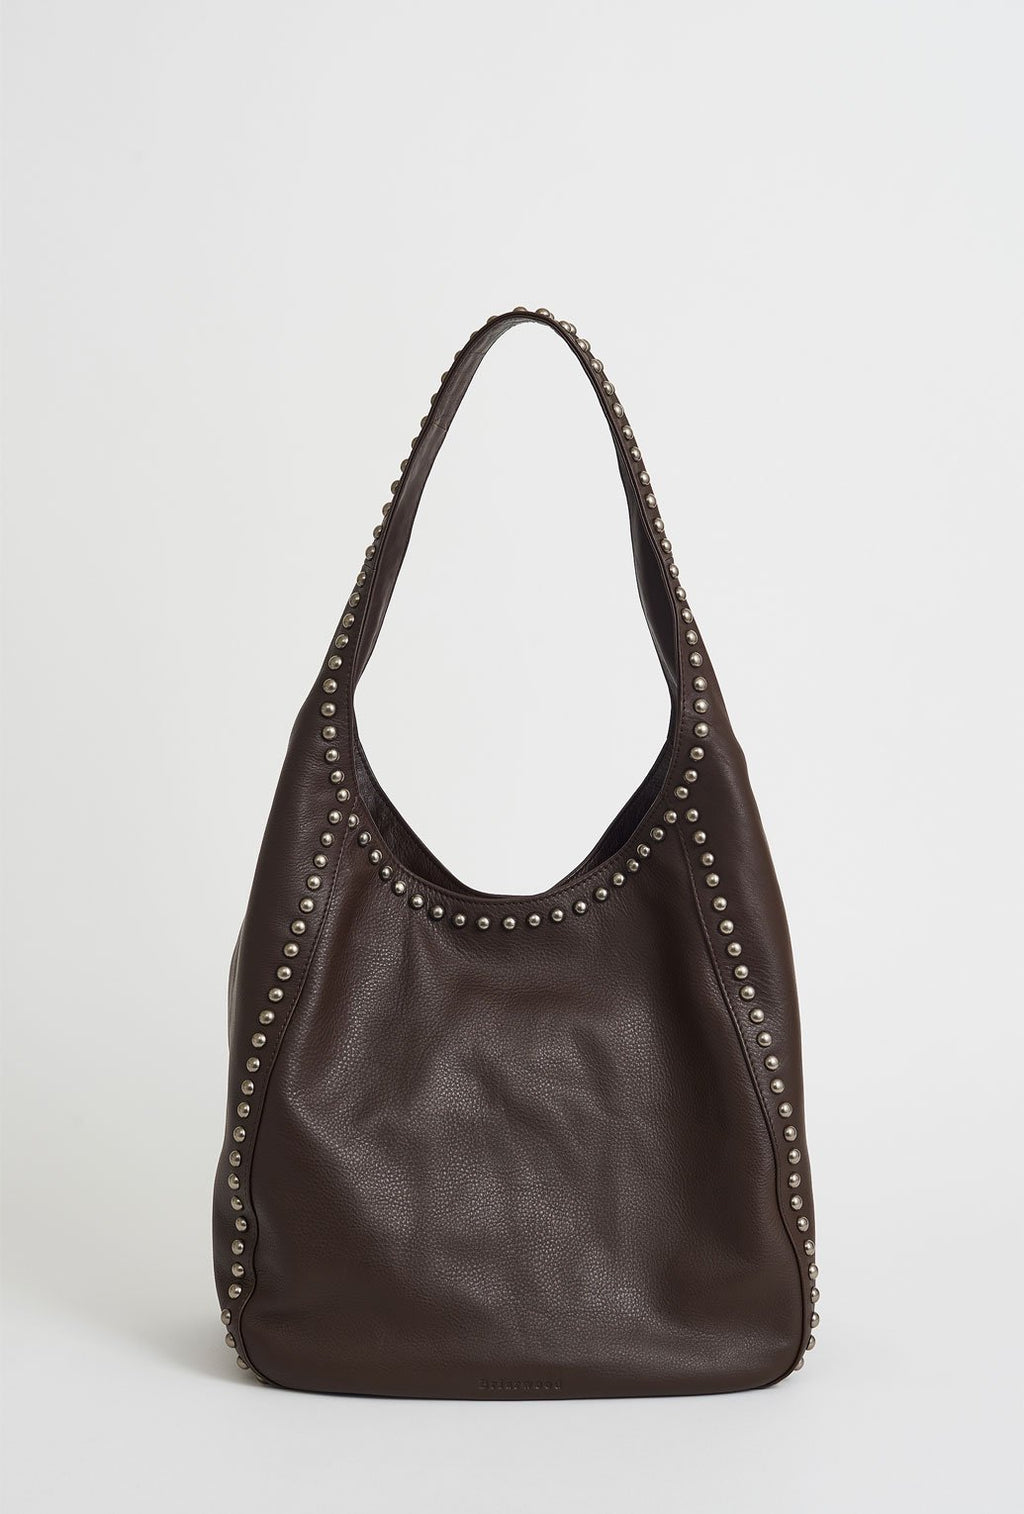 BRIARWOOD PIPPA BAG - CHOCOLATE